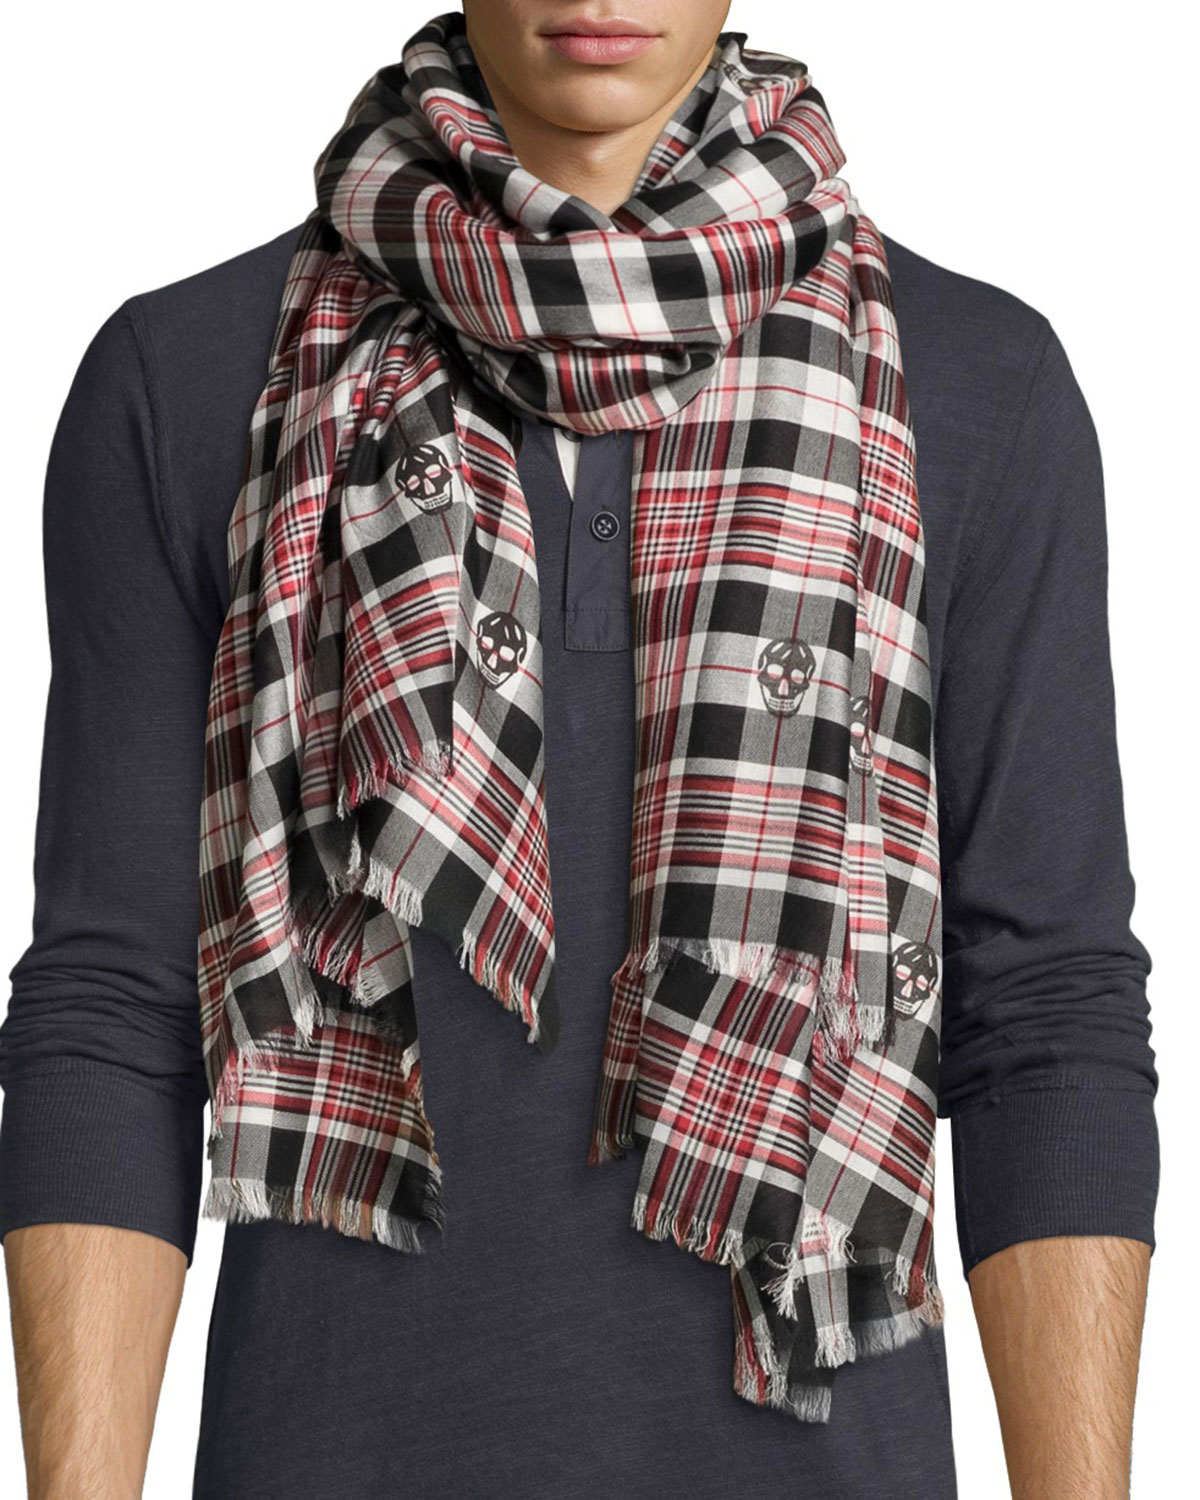 Fashion style Mcqueen alexander scarf red photo for woman